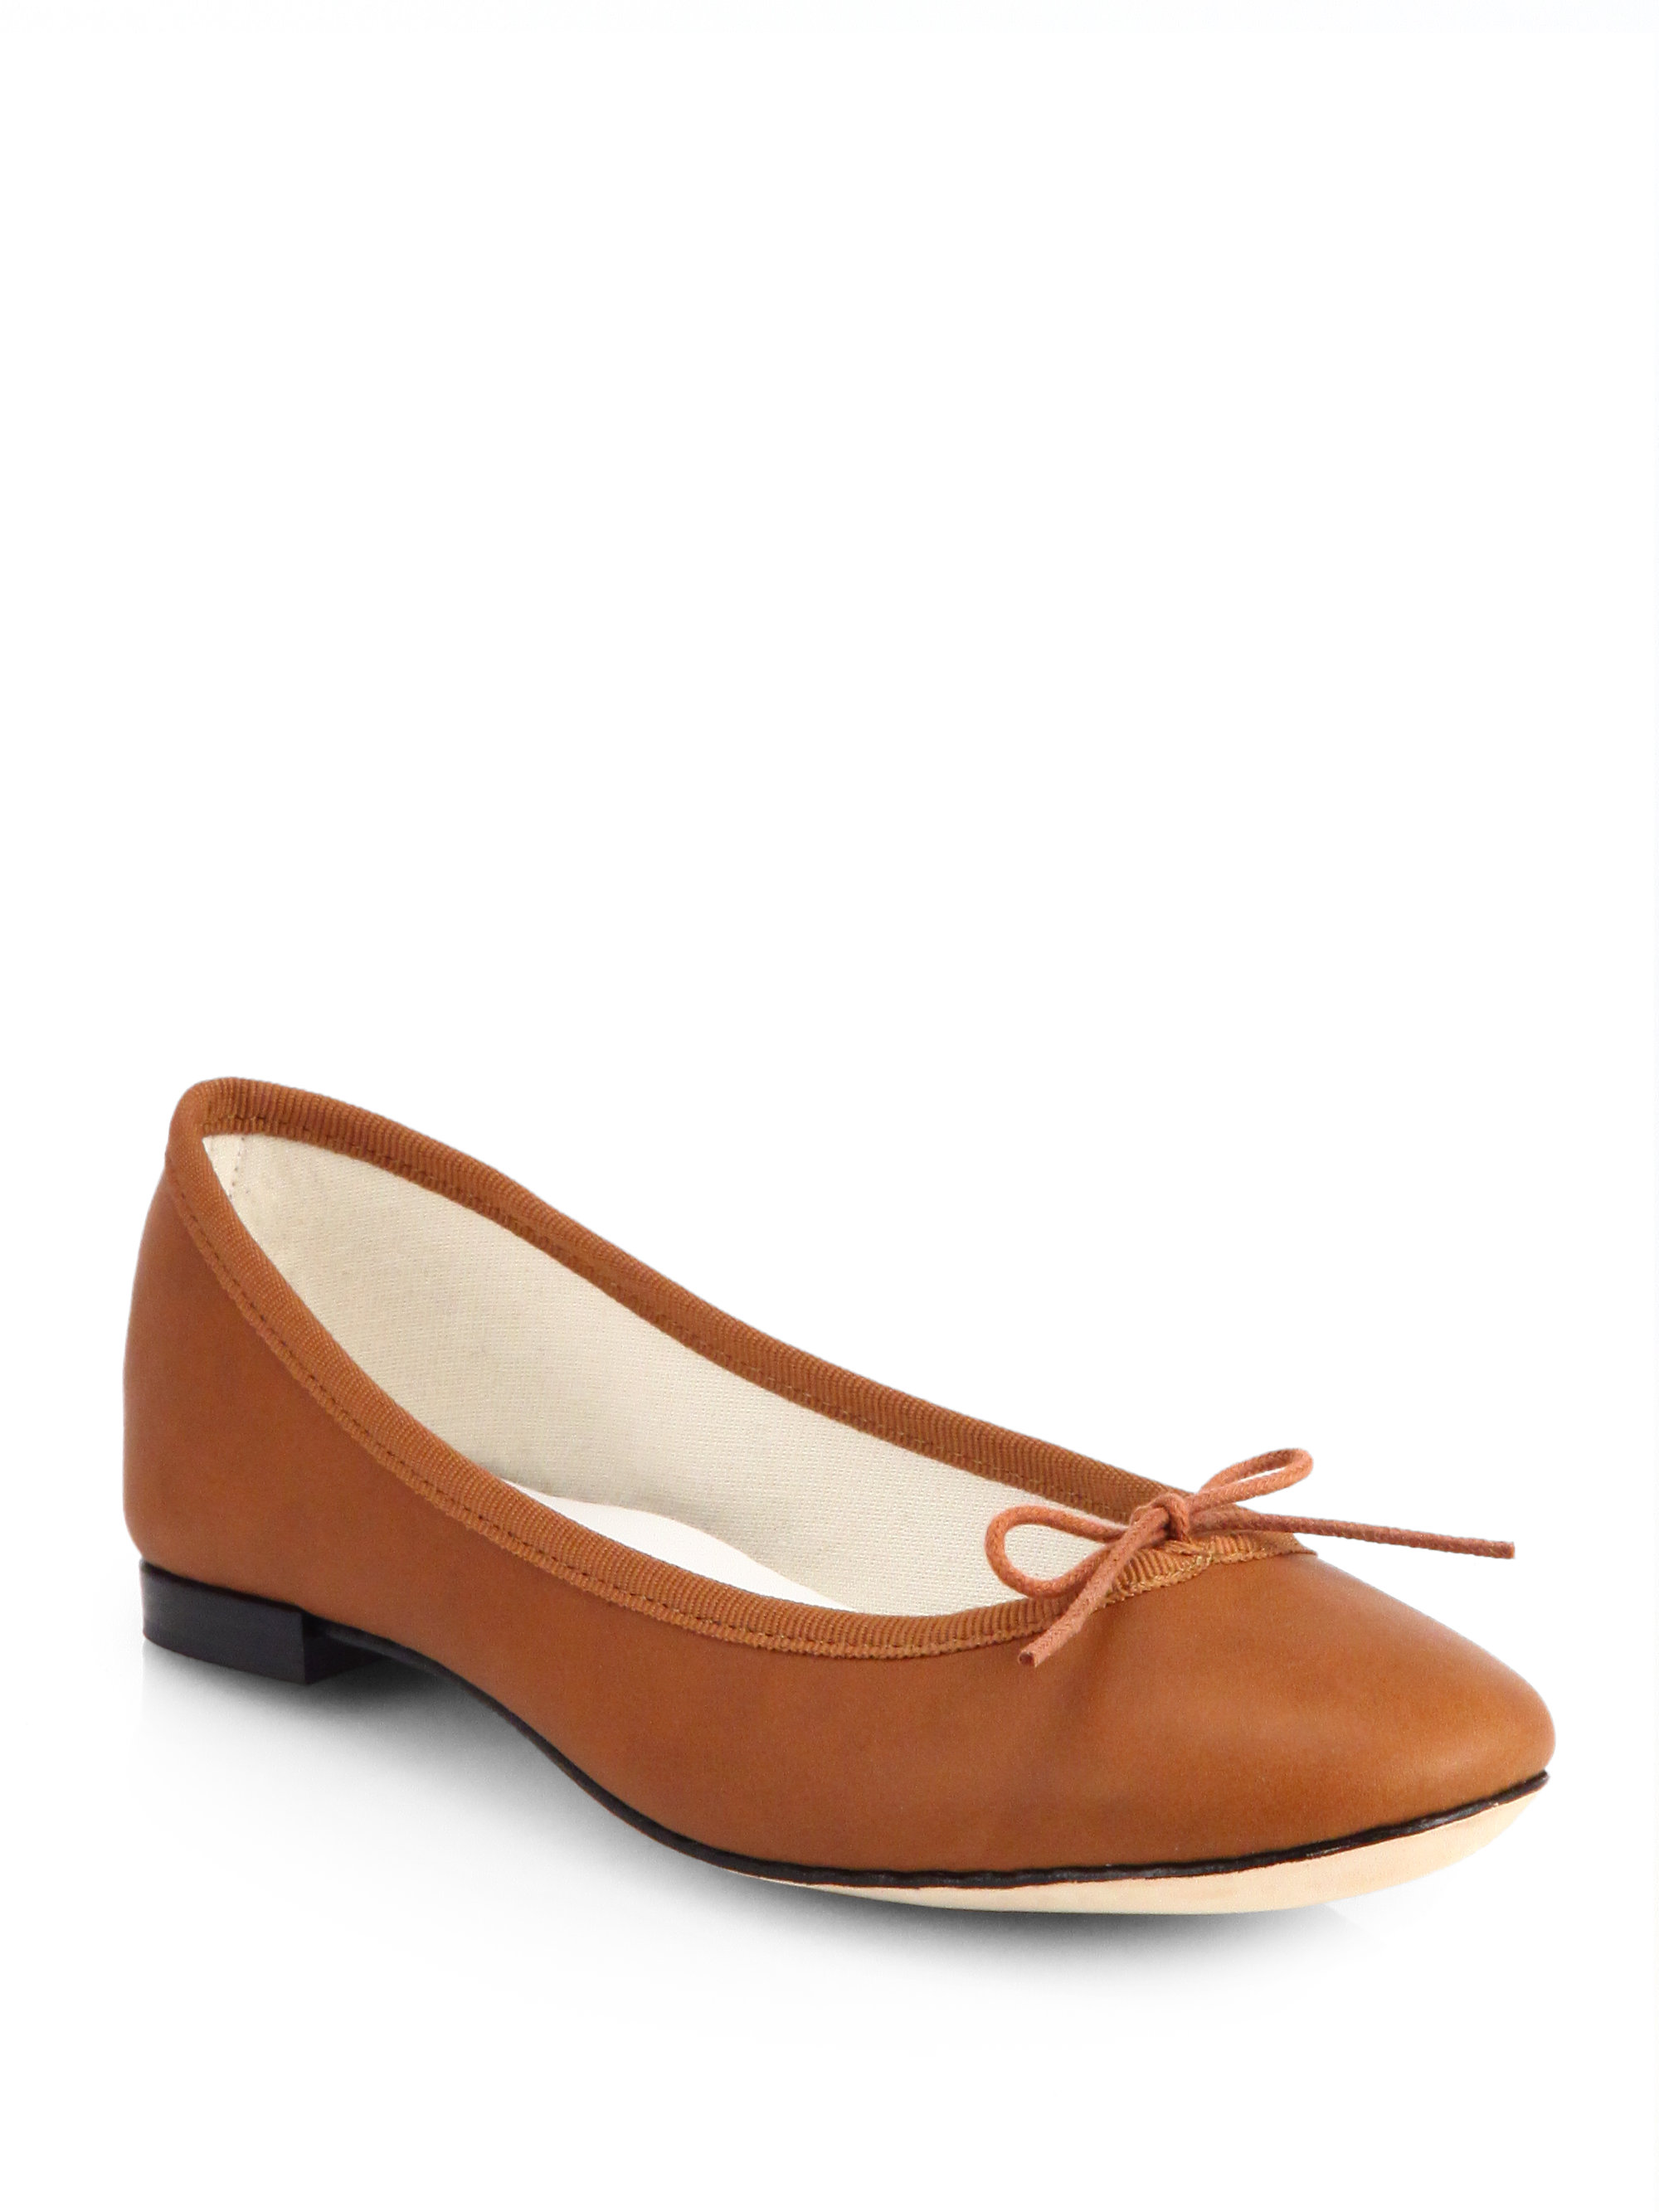 Repetto Womens Shoes